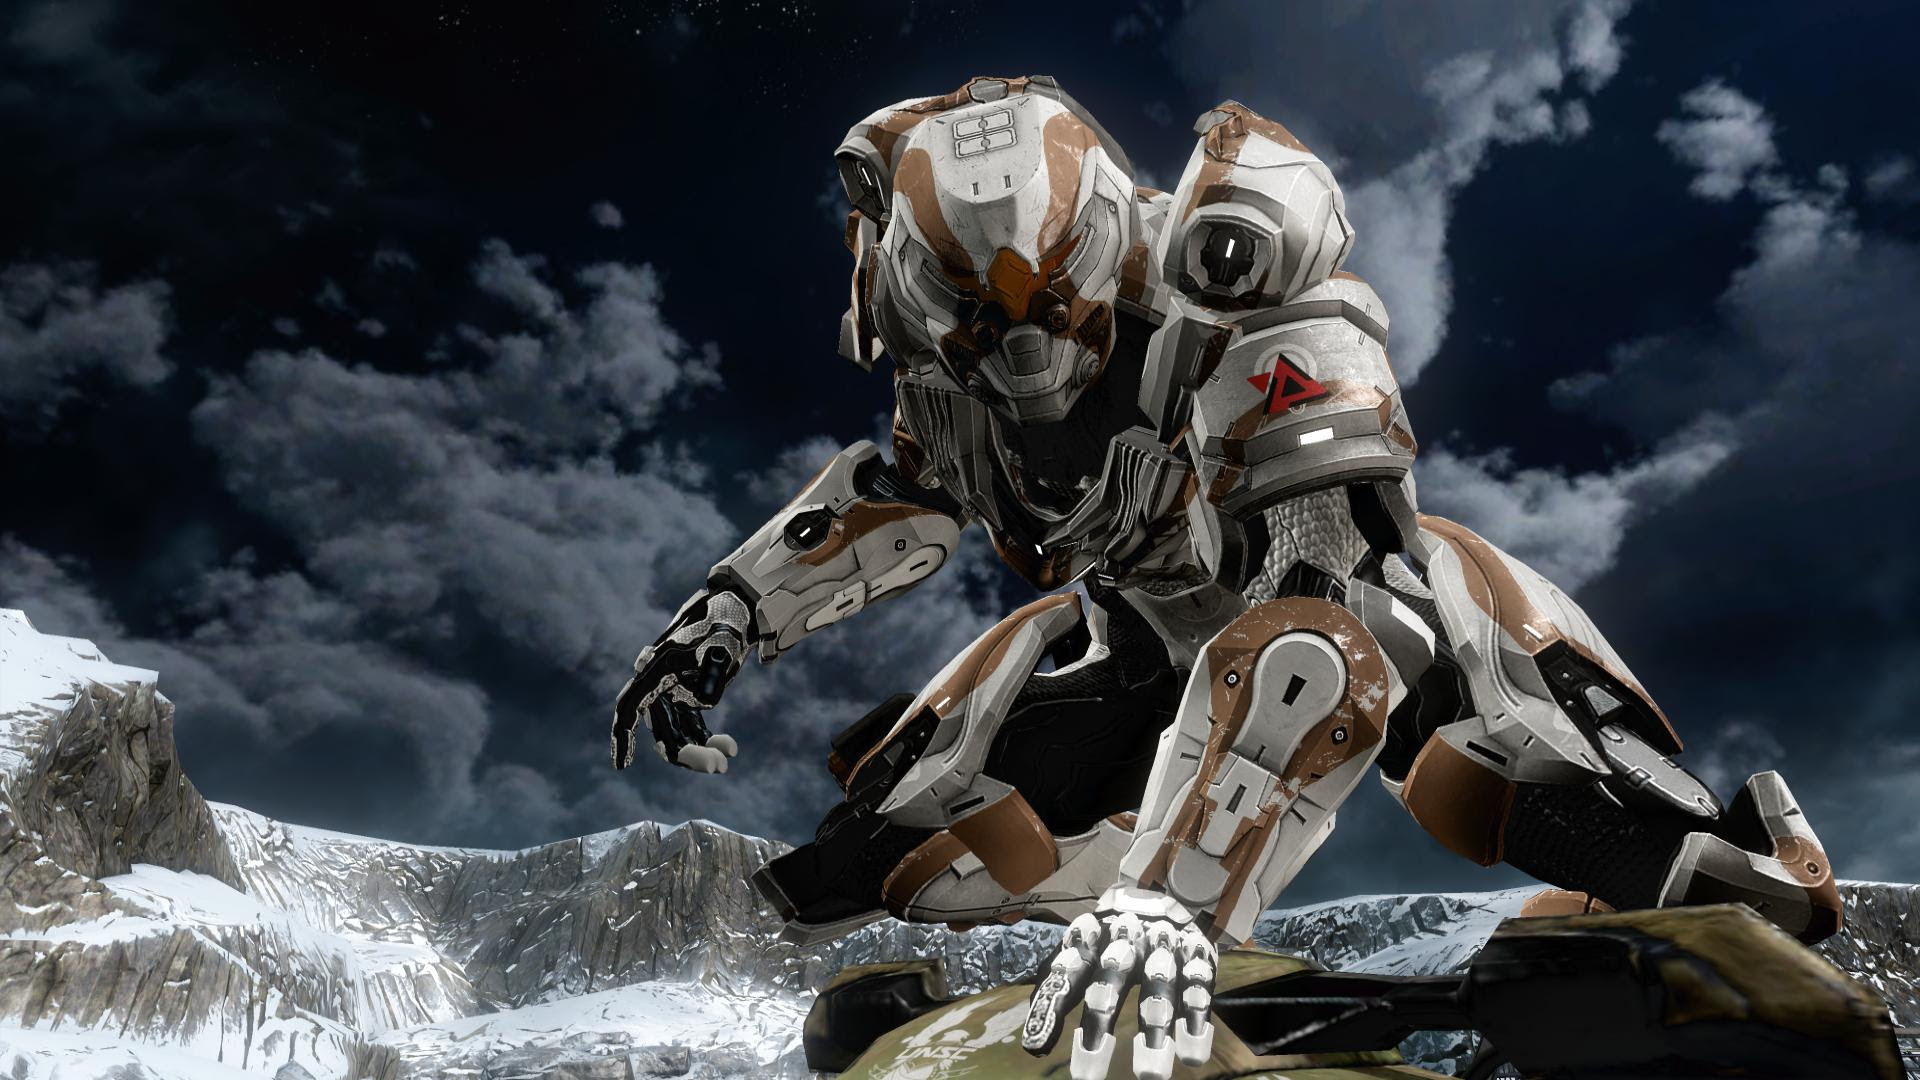 Halo Master Chief Wallpaper Photos Amazing Wallpaperz 1920x1080